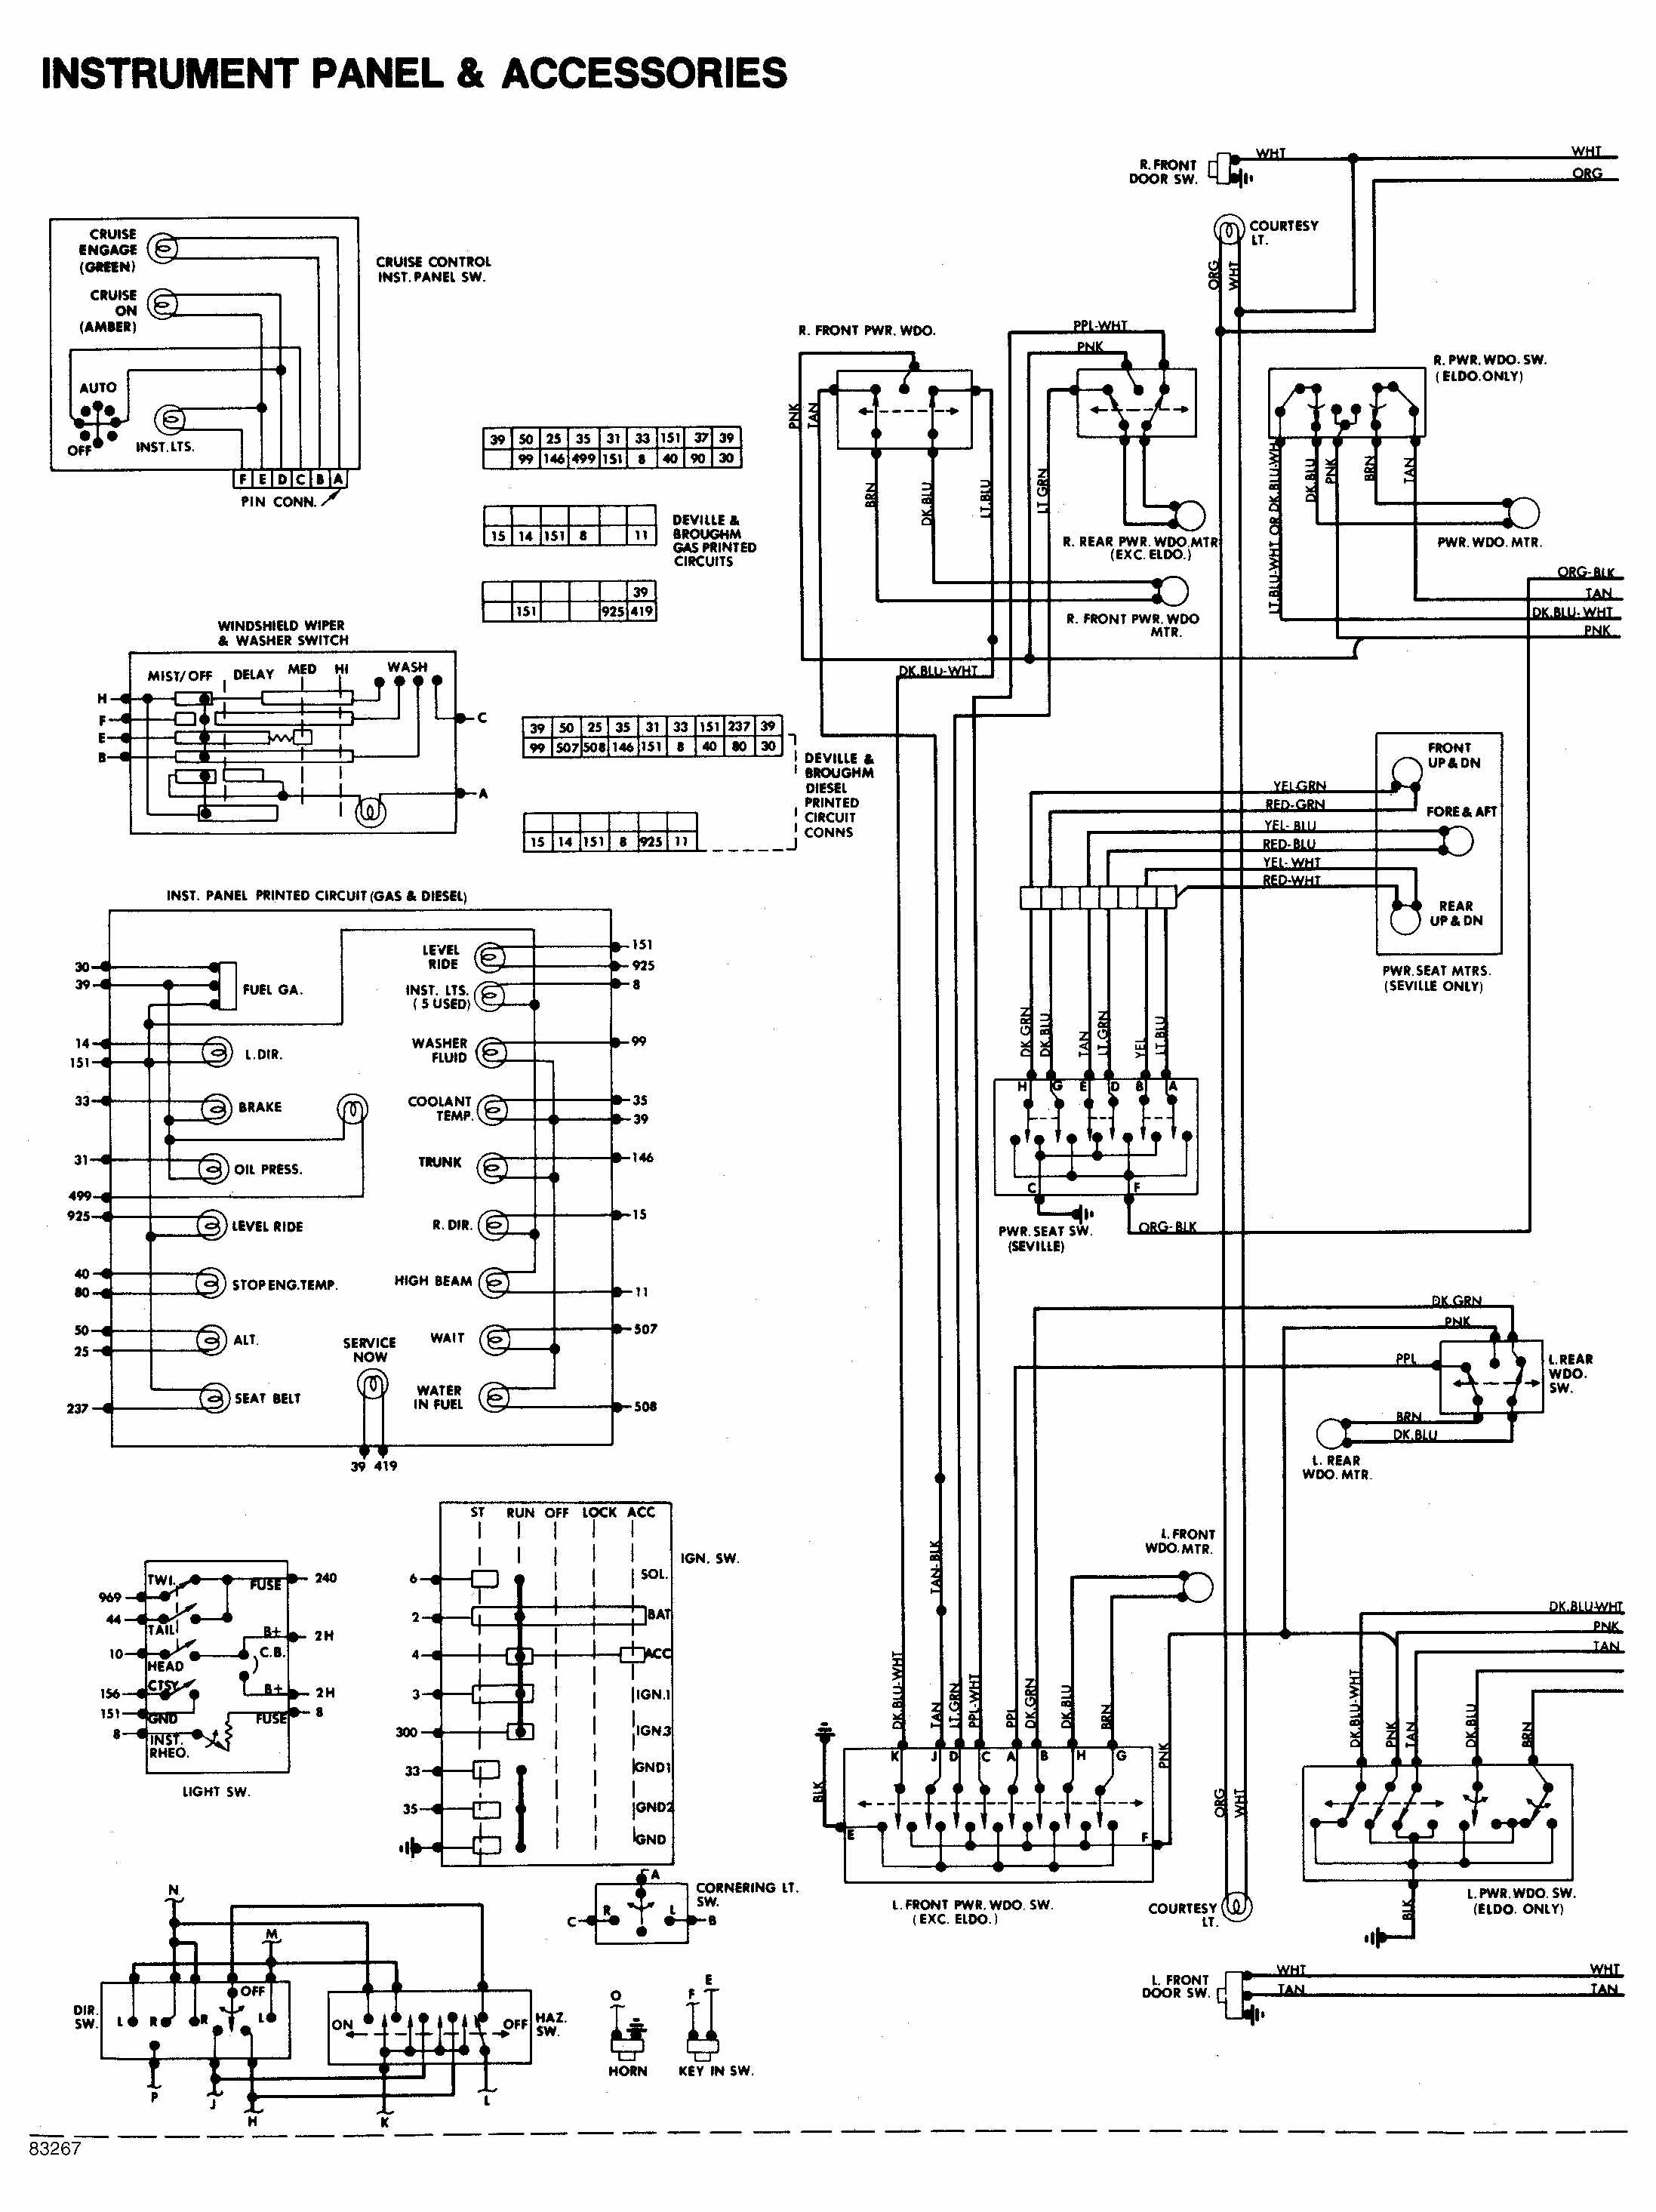 instrument panel and accessories wiring diagram of 1984 cadillac deville chevy diagrams Cadillac DeVille Concours Engine at edmiracle.co